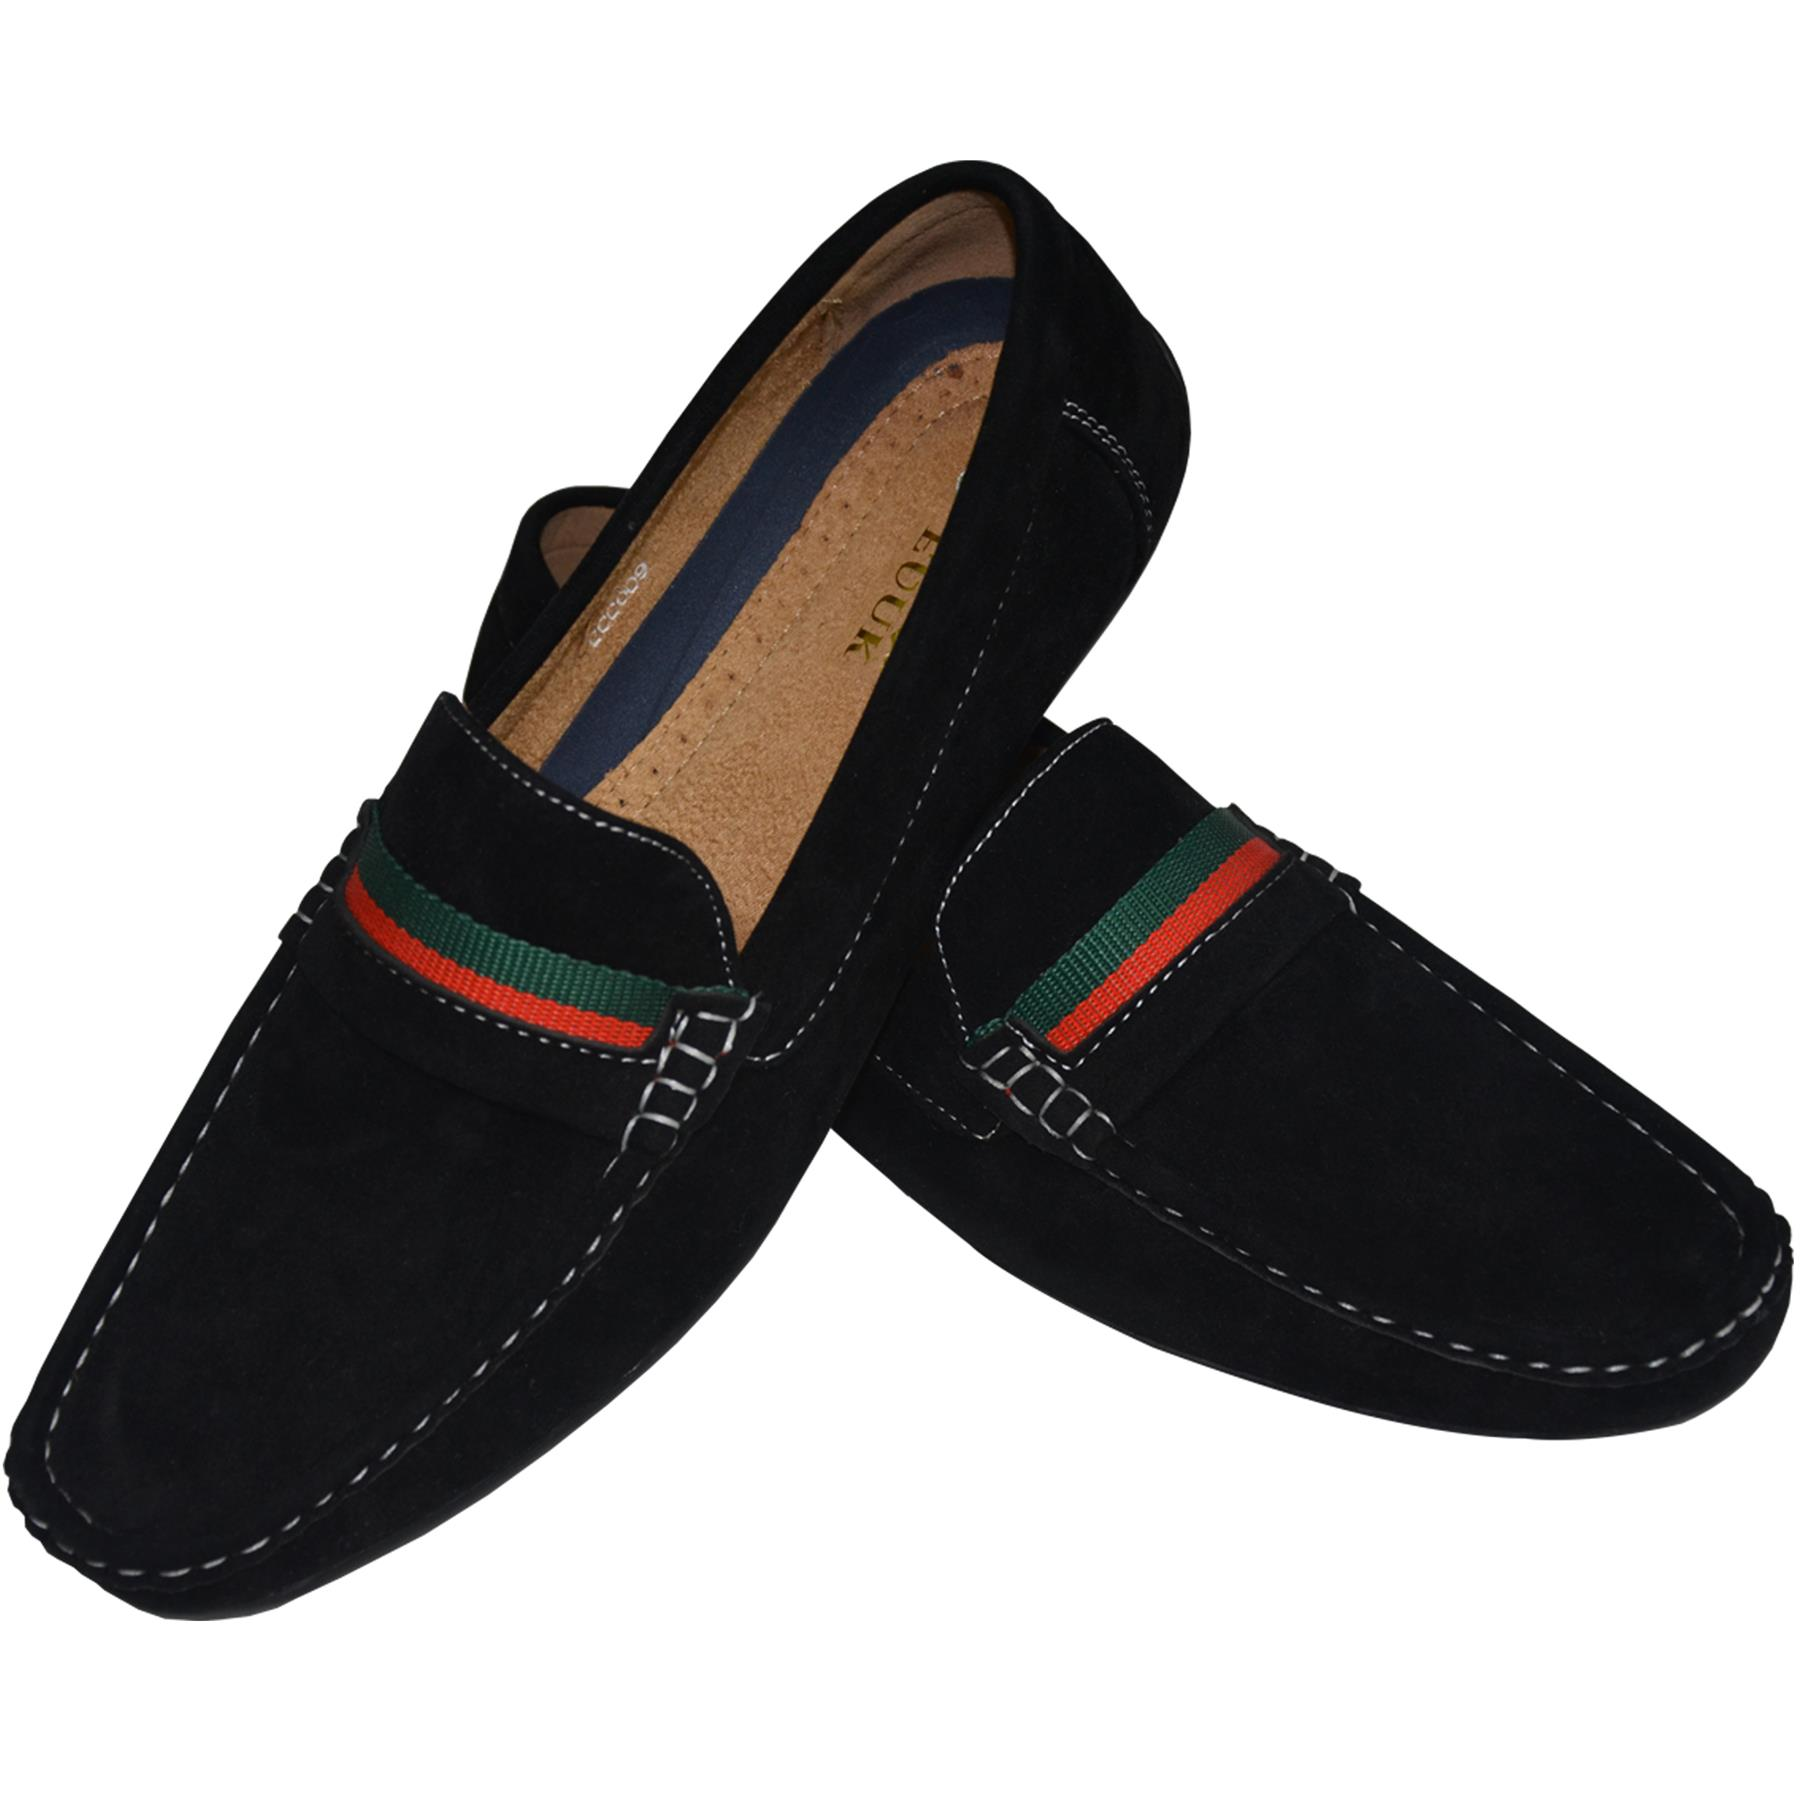 Mens-Suede-Loafers-Shoes-Moccasin-Slip-On-Casual-Boat-Driving-UK-Sizes-6-12 thumbnail 22